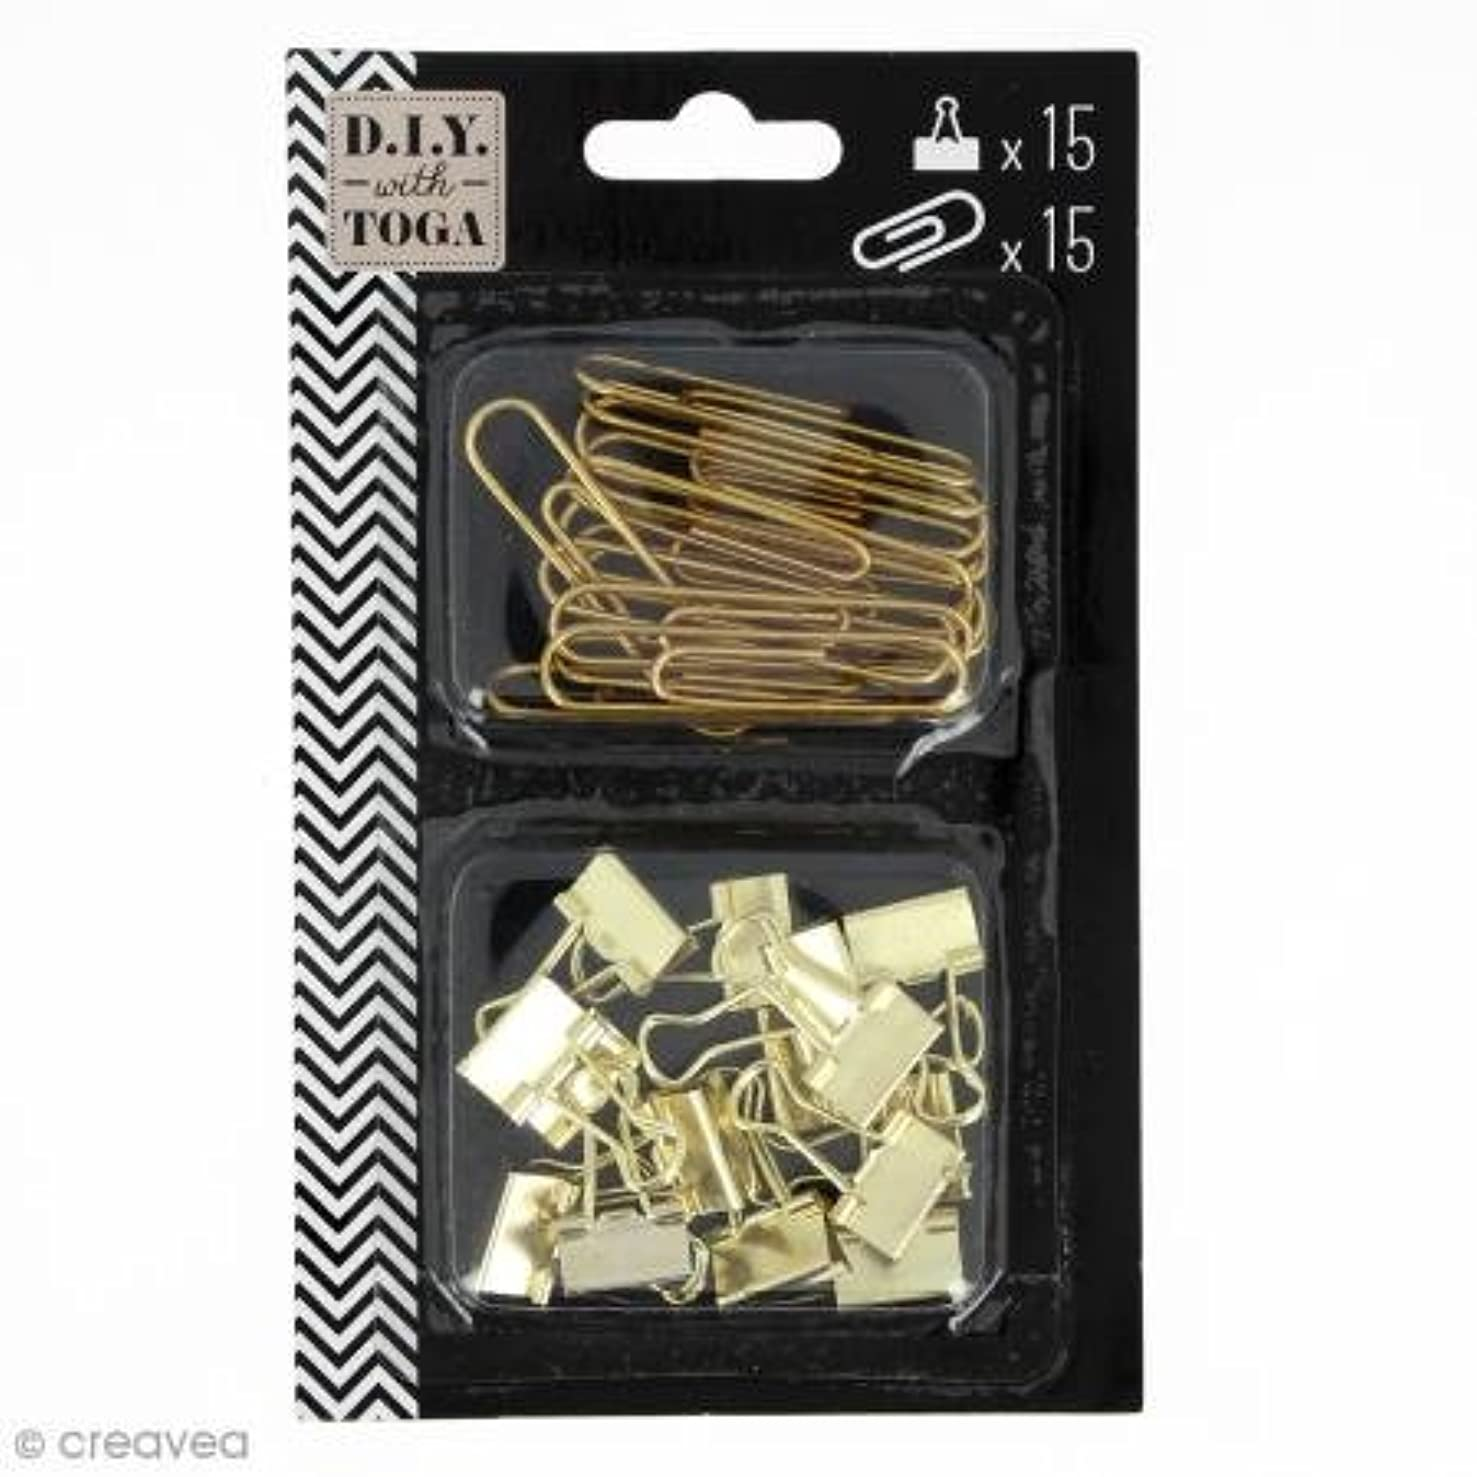 D.I.Y with Toga Maxi Pack + 15?Mini pinces-Clip Paper Clips, Metal, Gold, 1?x 0.2?x 5?inches